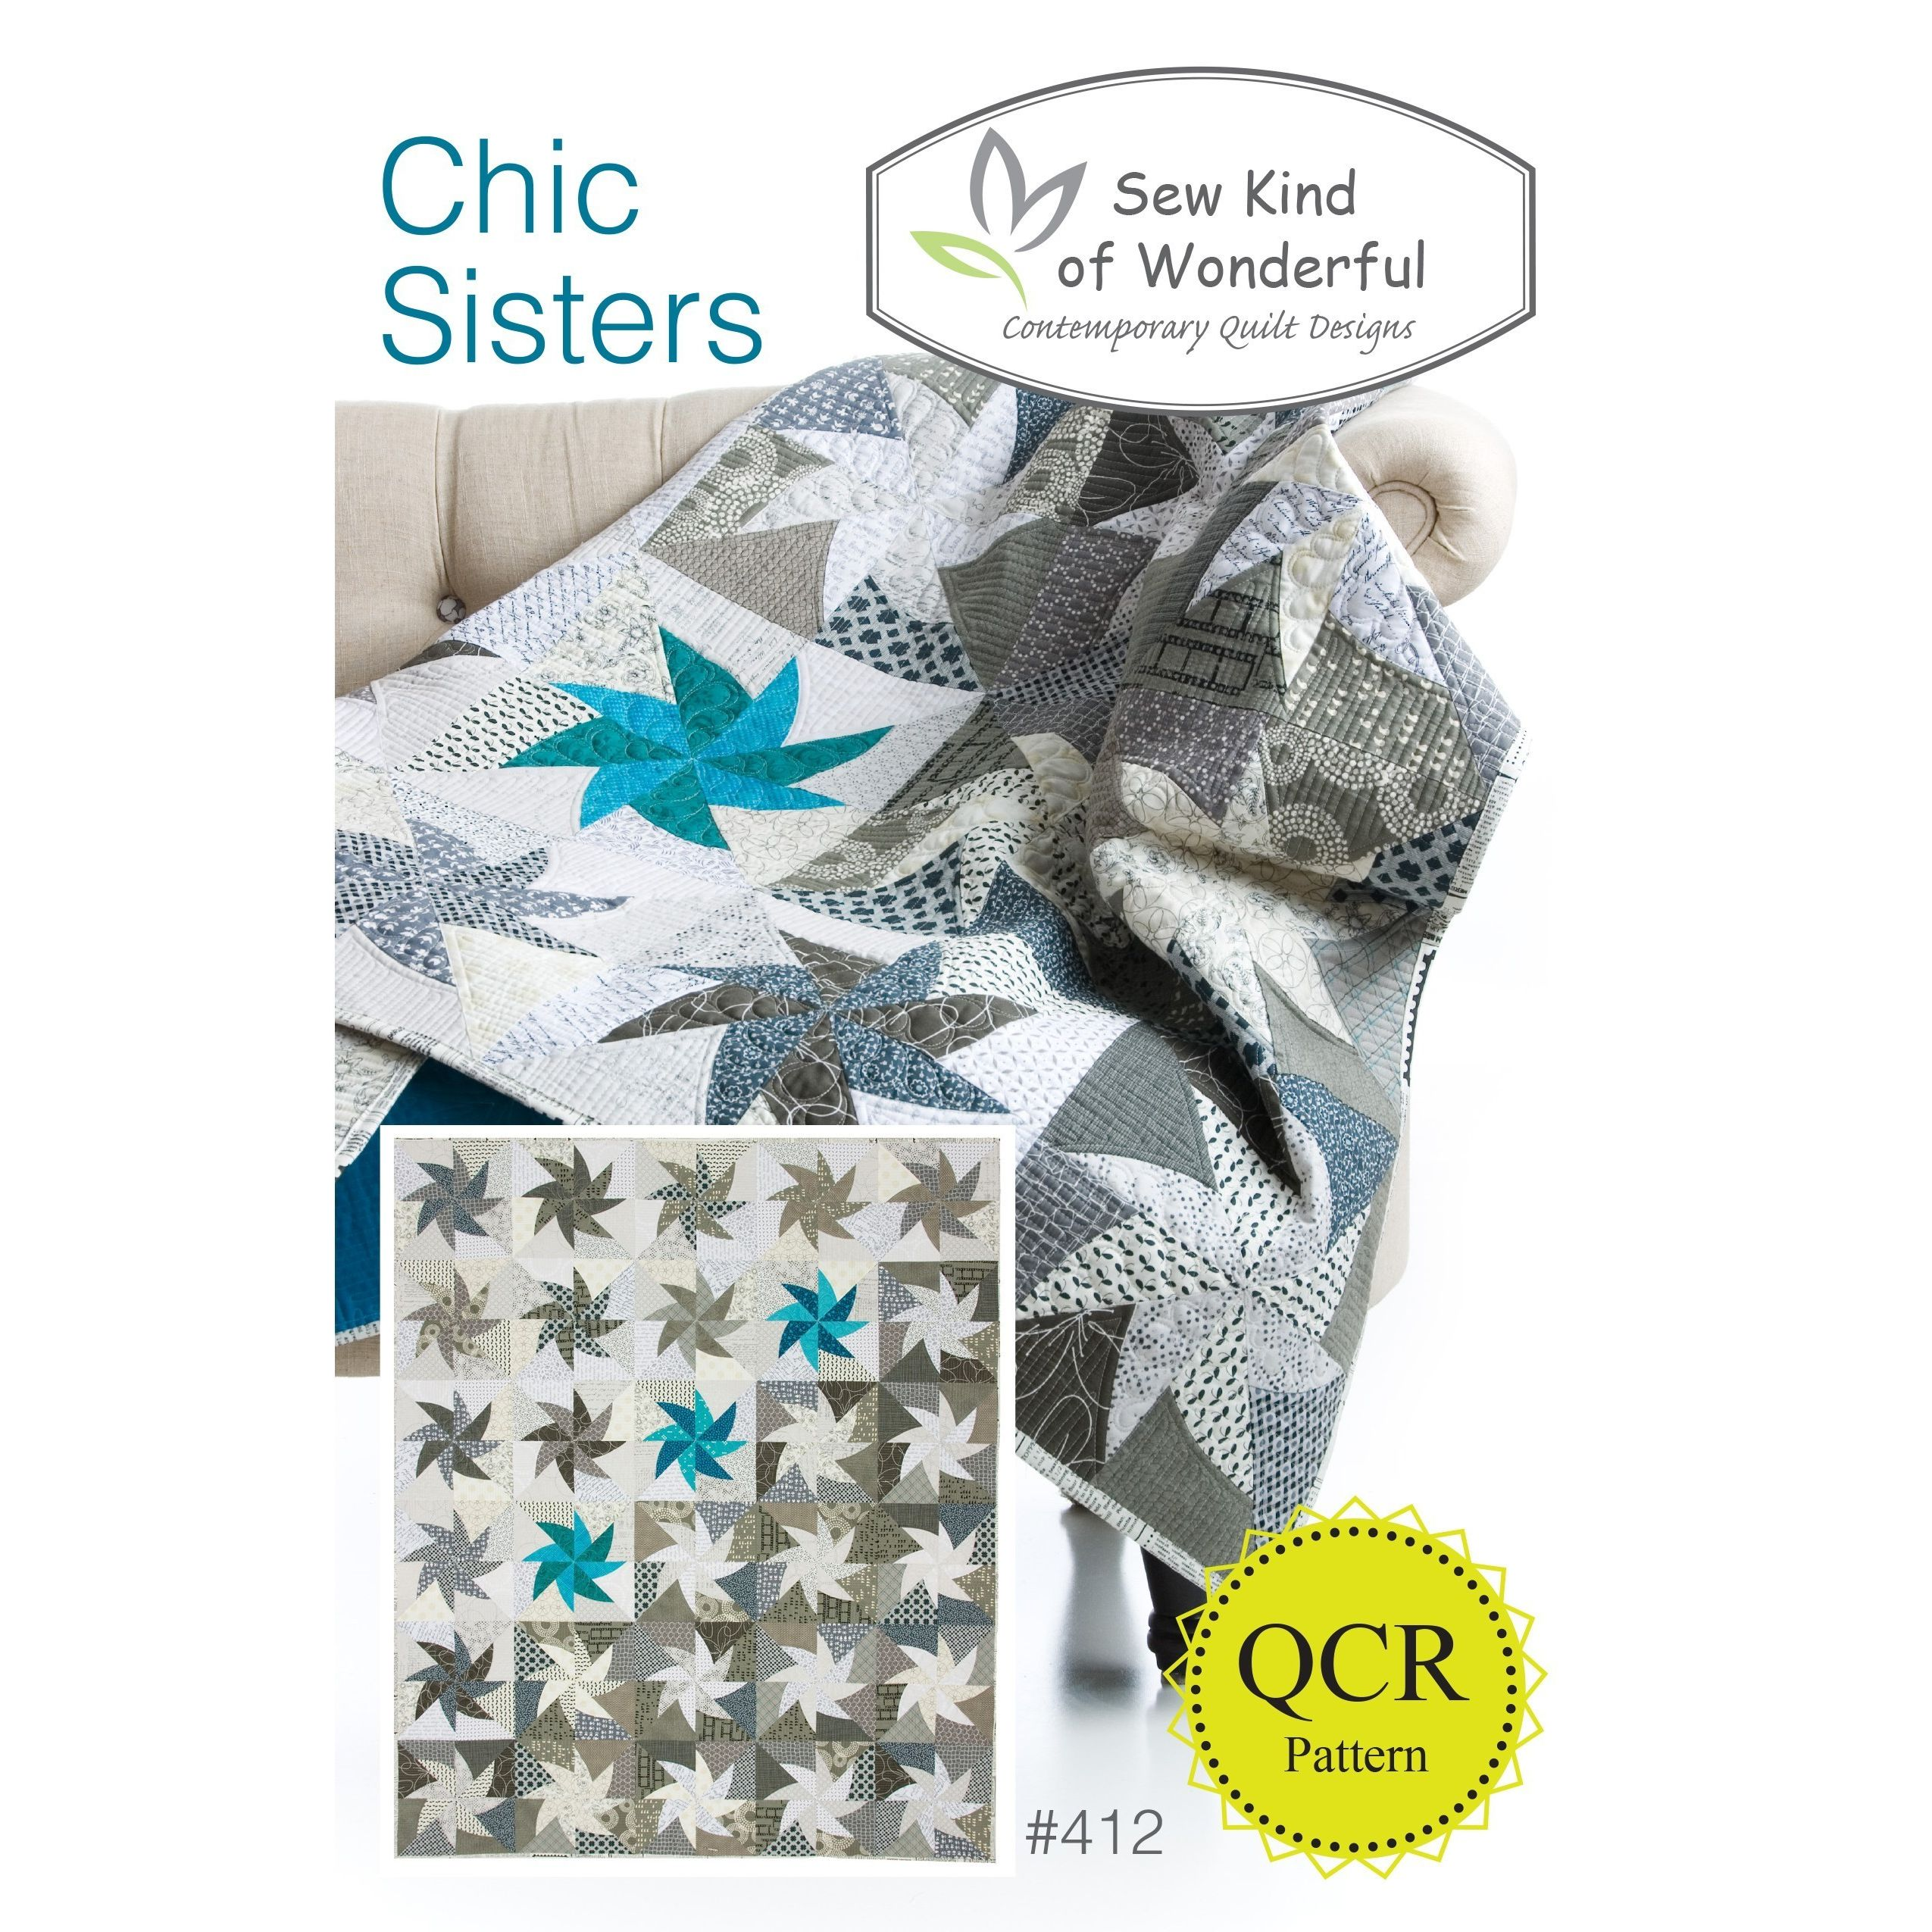 Chic Sisters Pattern by Sew Kind of Wonderful